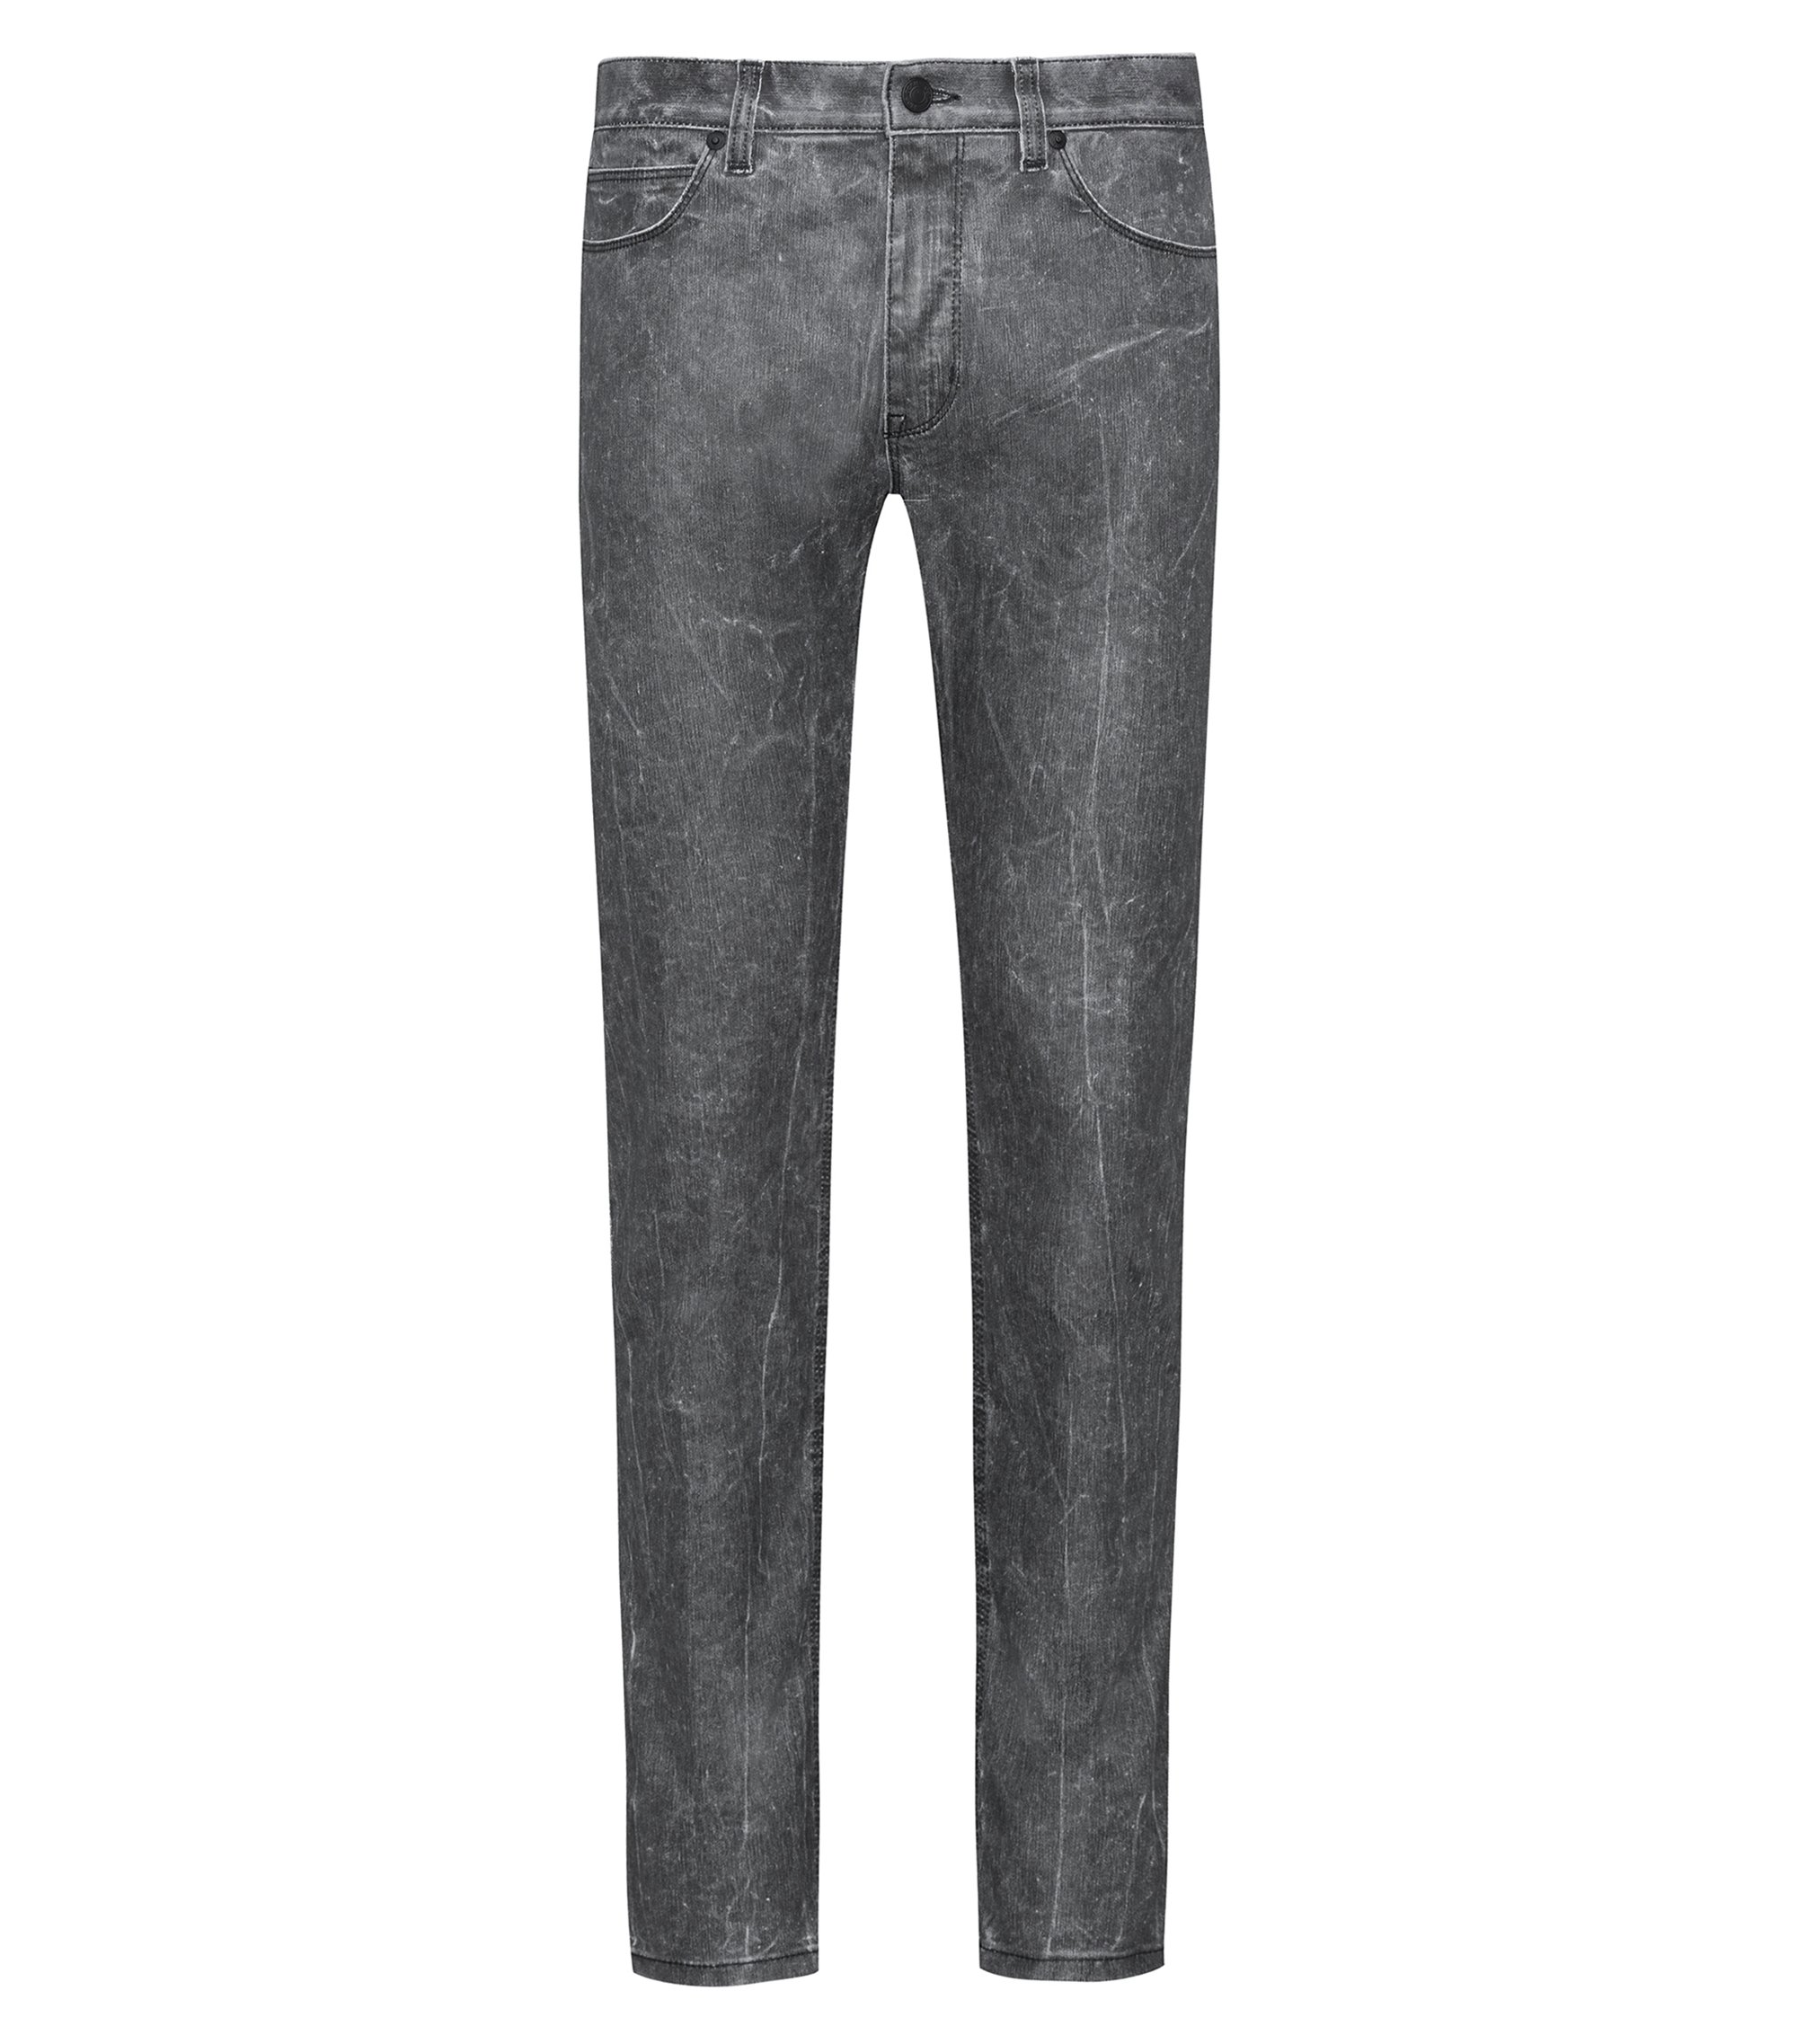 Skinny-Fit Jeans aus Stretch-Denim in strukturierter Optik, Schwarz